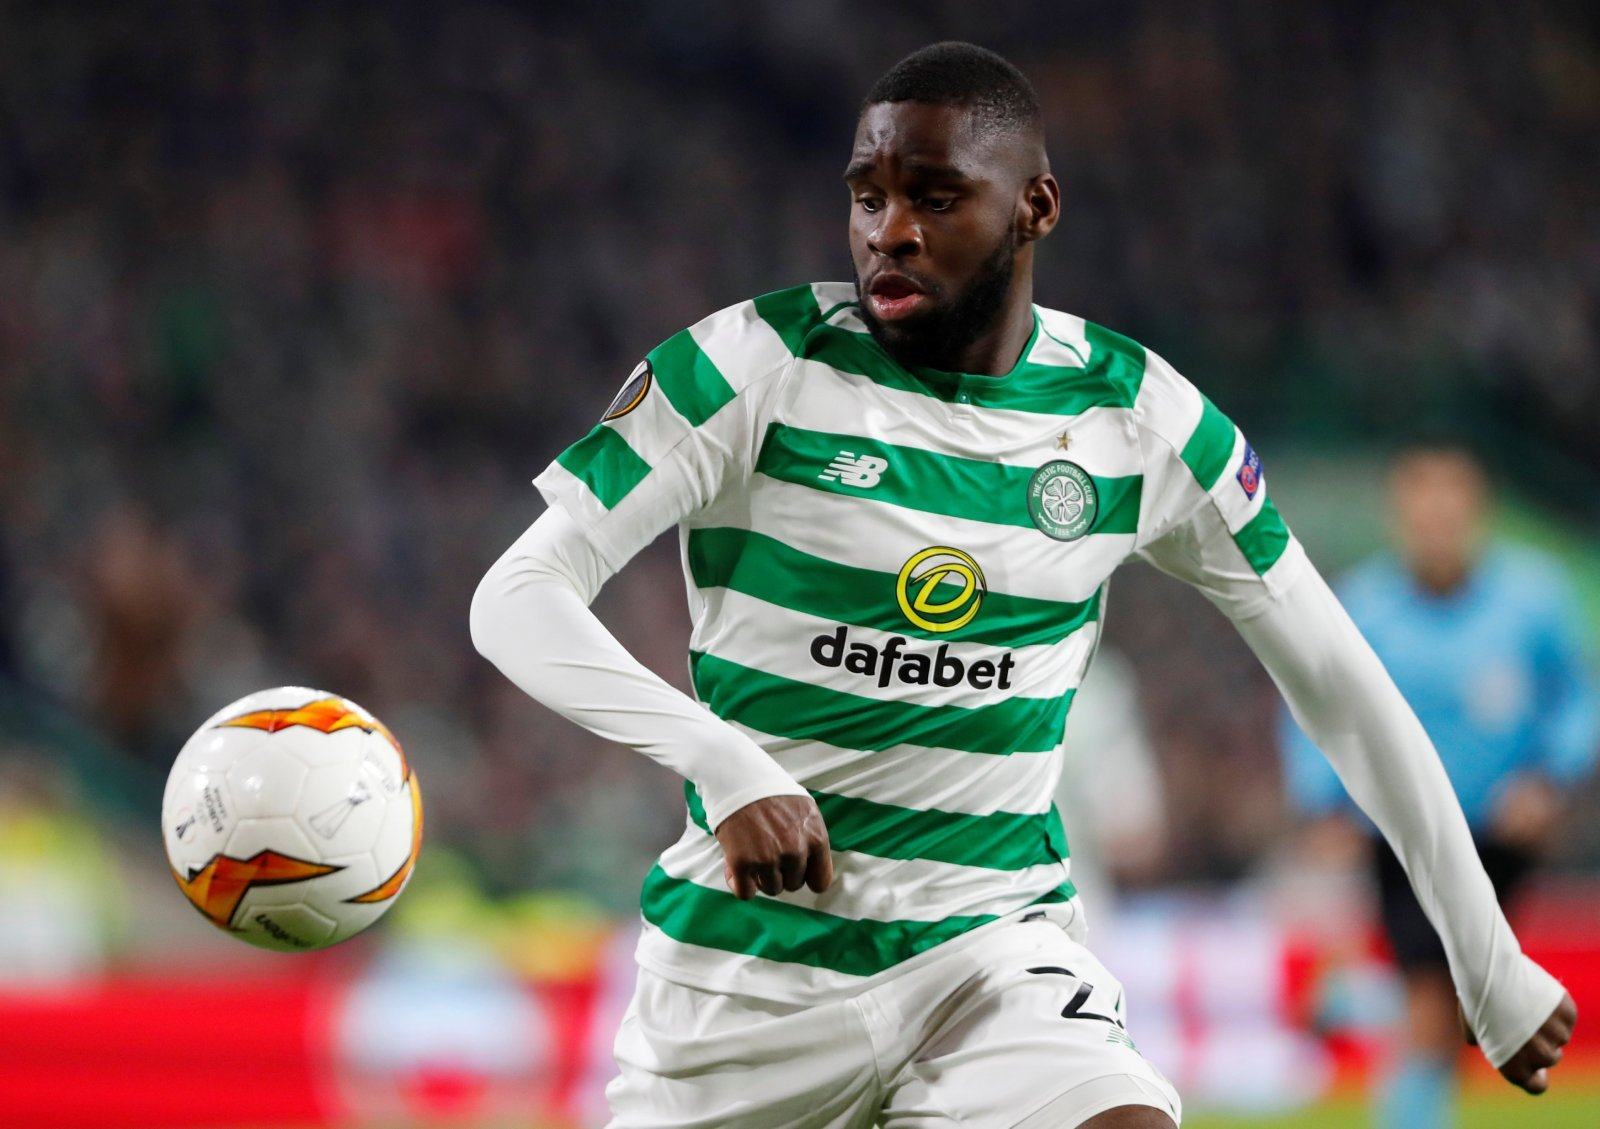 Celtic: Fans furious over Odsonne Edouard and Kristoffer Ajer injuries